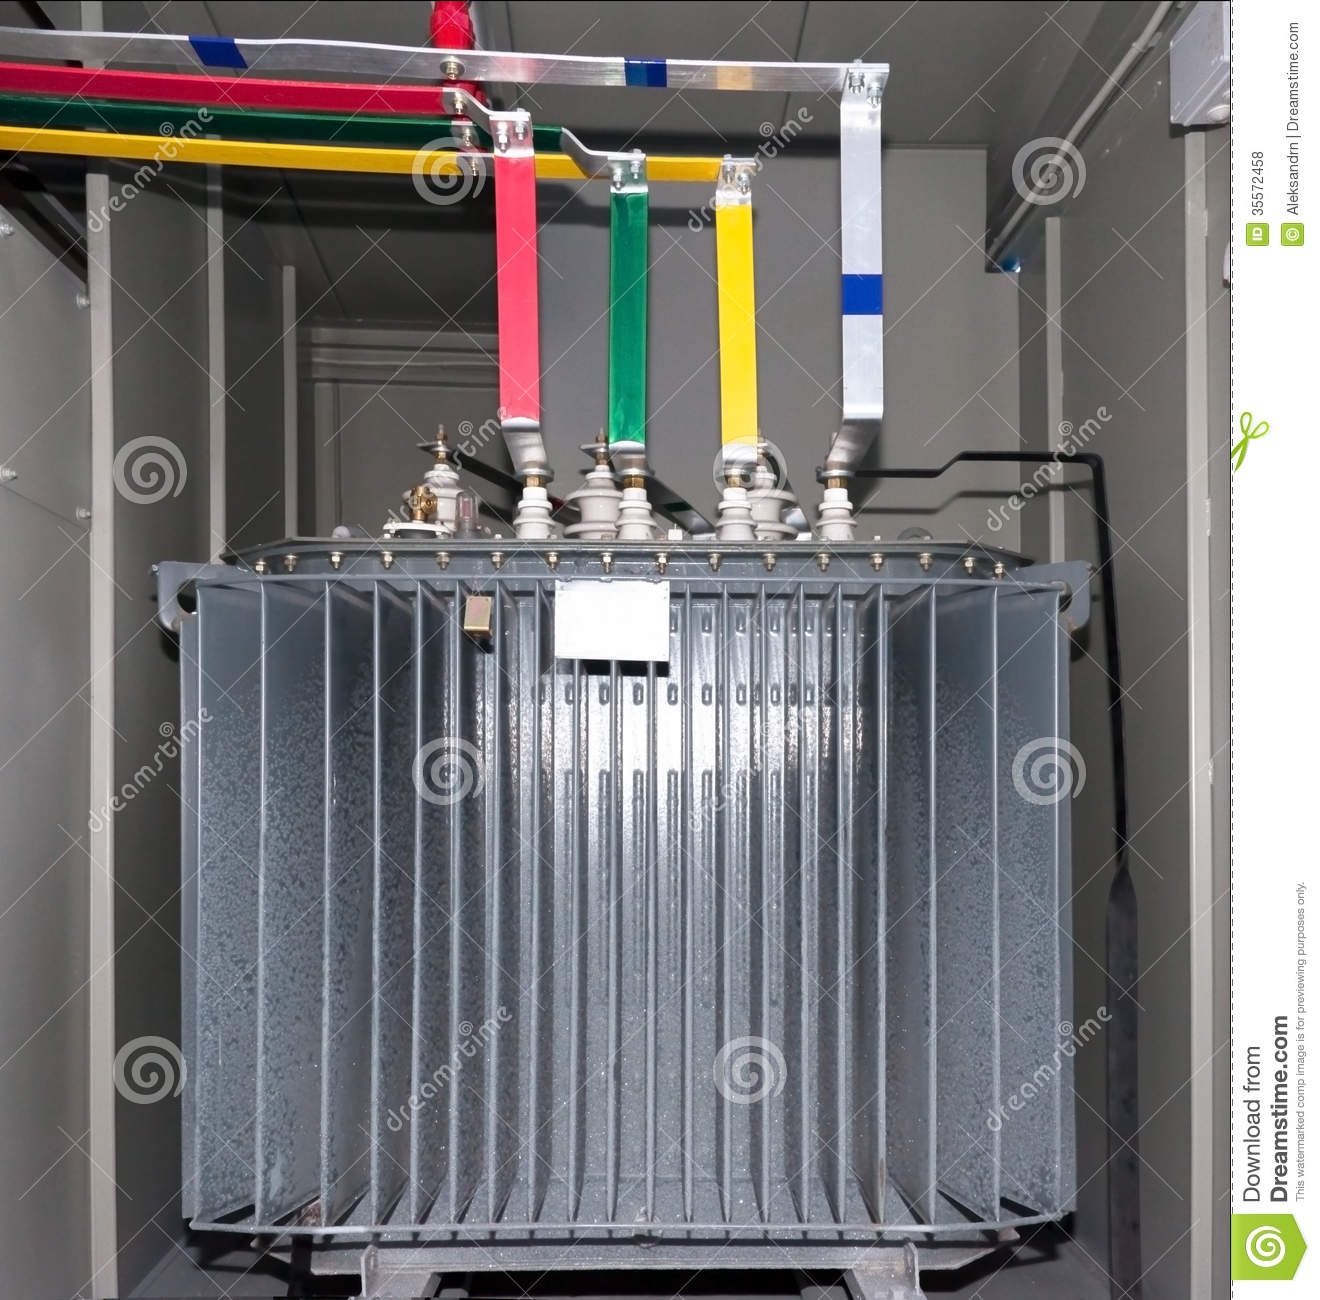 Red Canisters For Kitchen Power Transformer In The Compartment Royalty Free Stock